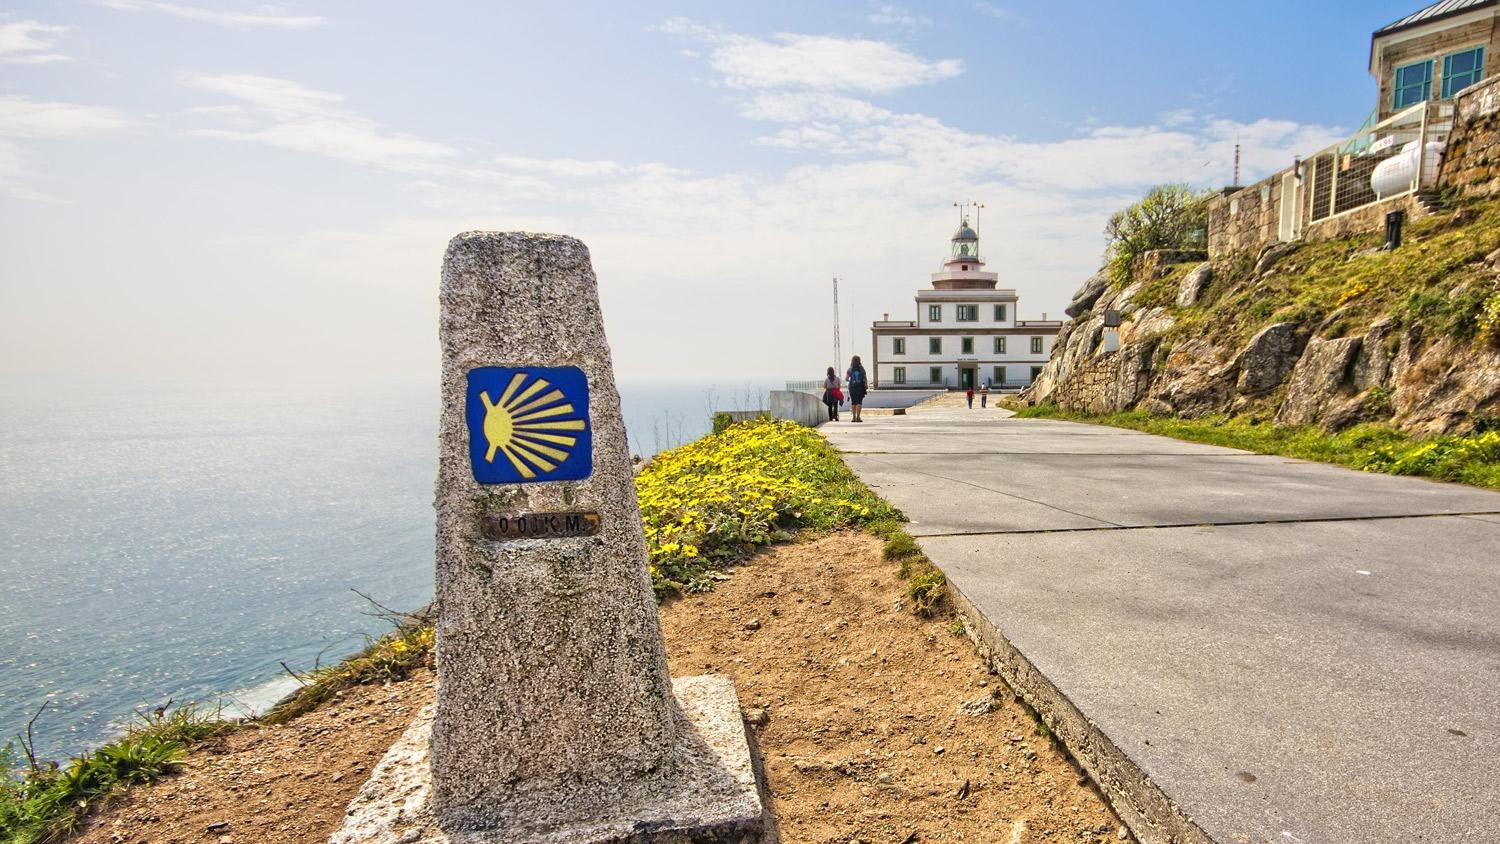 camino de santiago route marker on coast